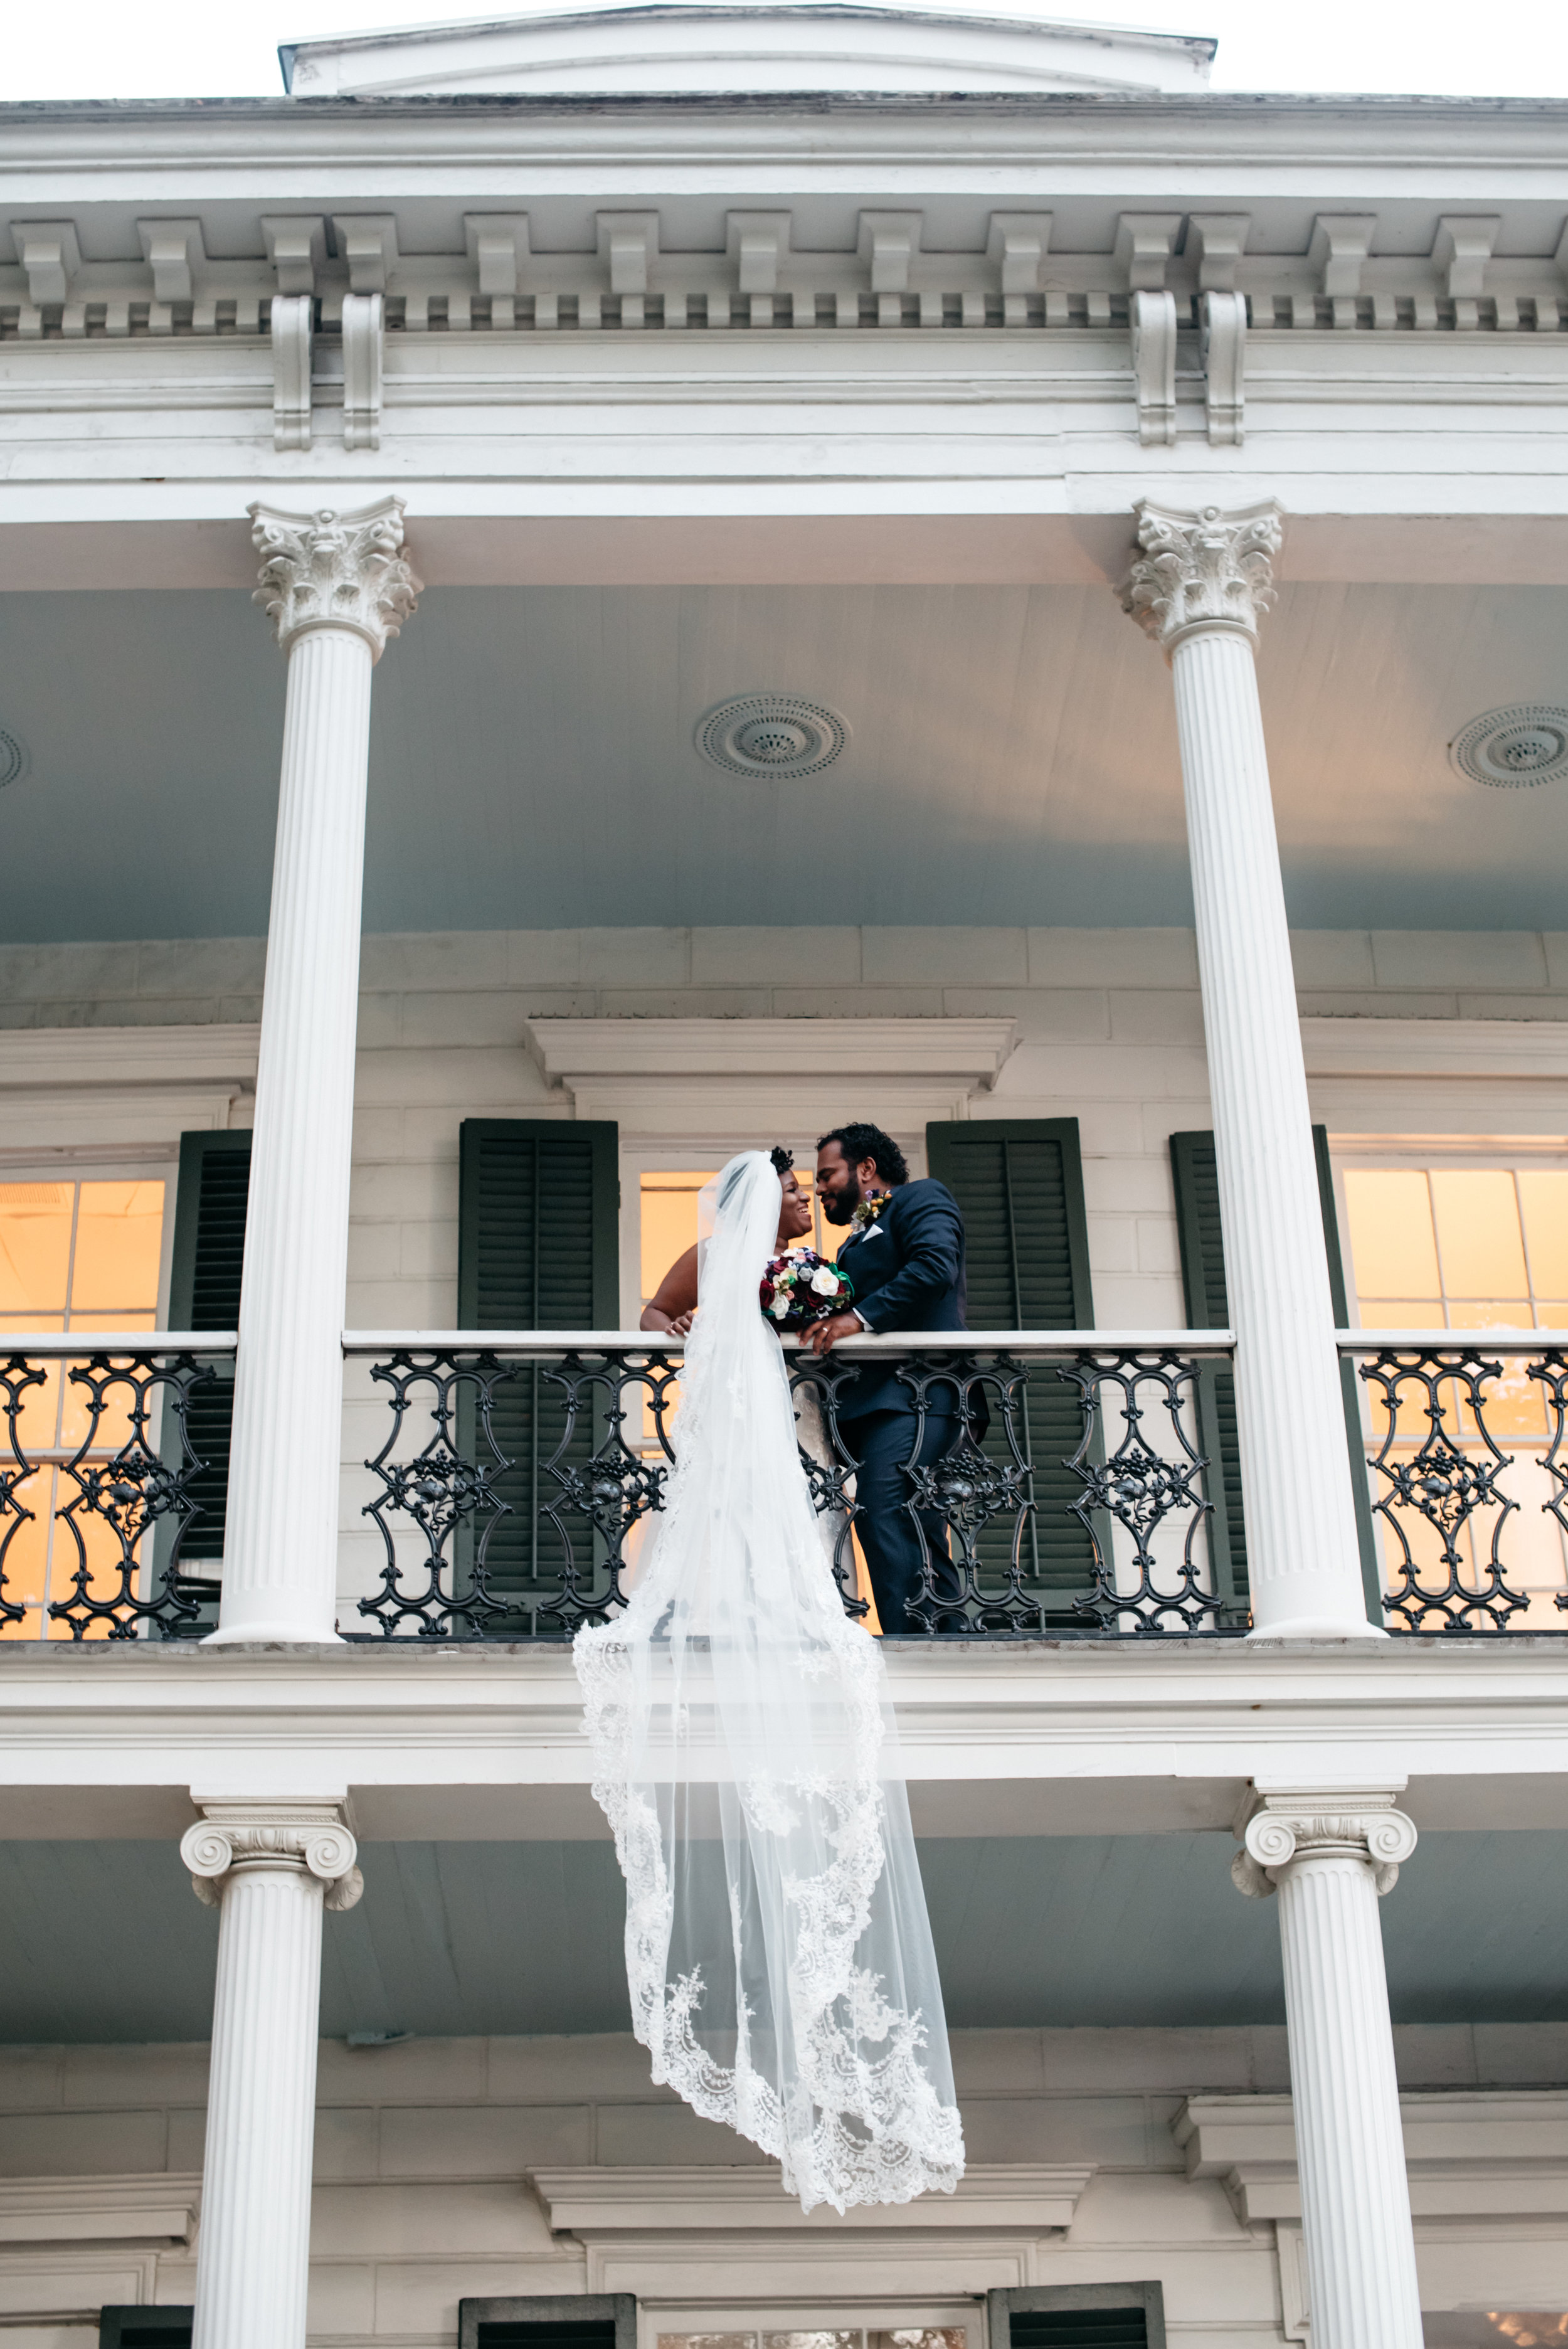 CourtneyDanny-New-Orleans-Wedding-419.jpg